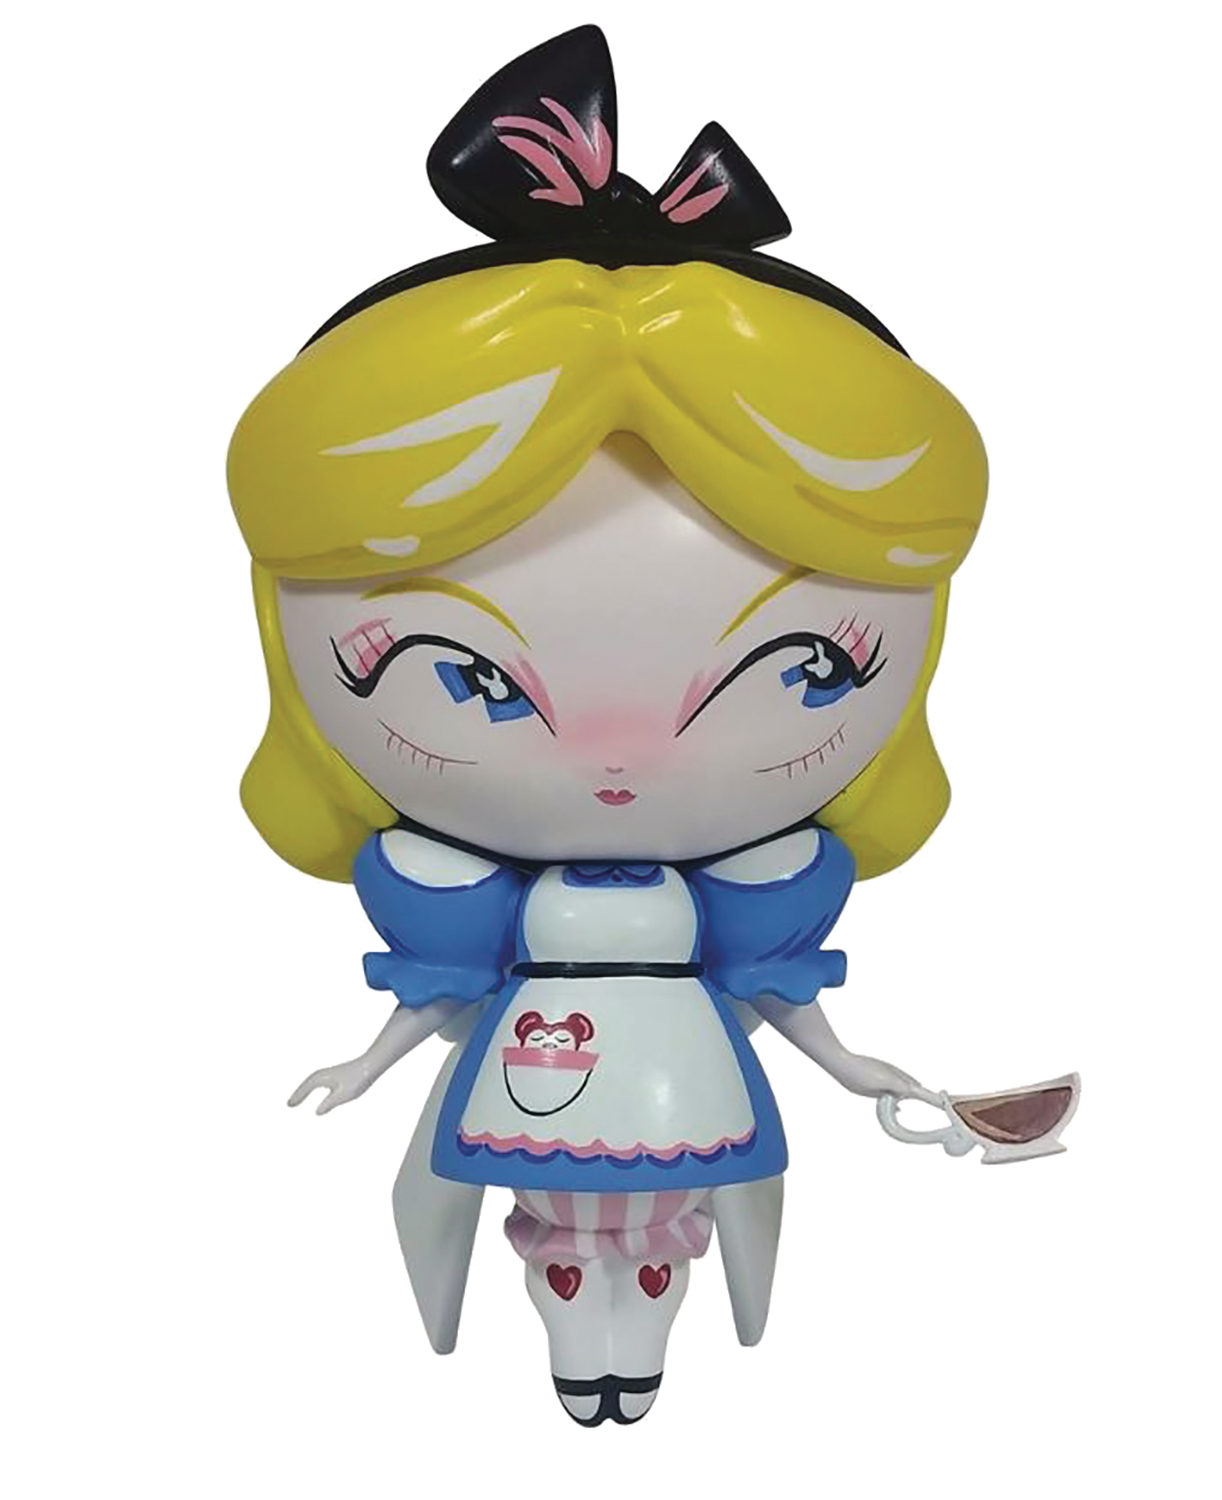 MISS MINDY ALICE IN WONDERLAND 7 IN VINYL FIGURE